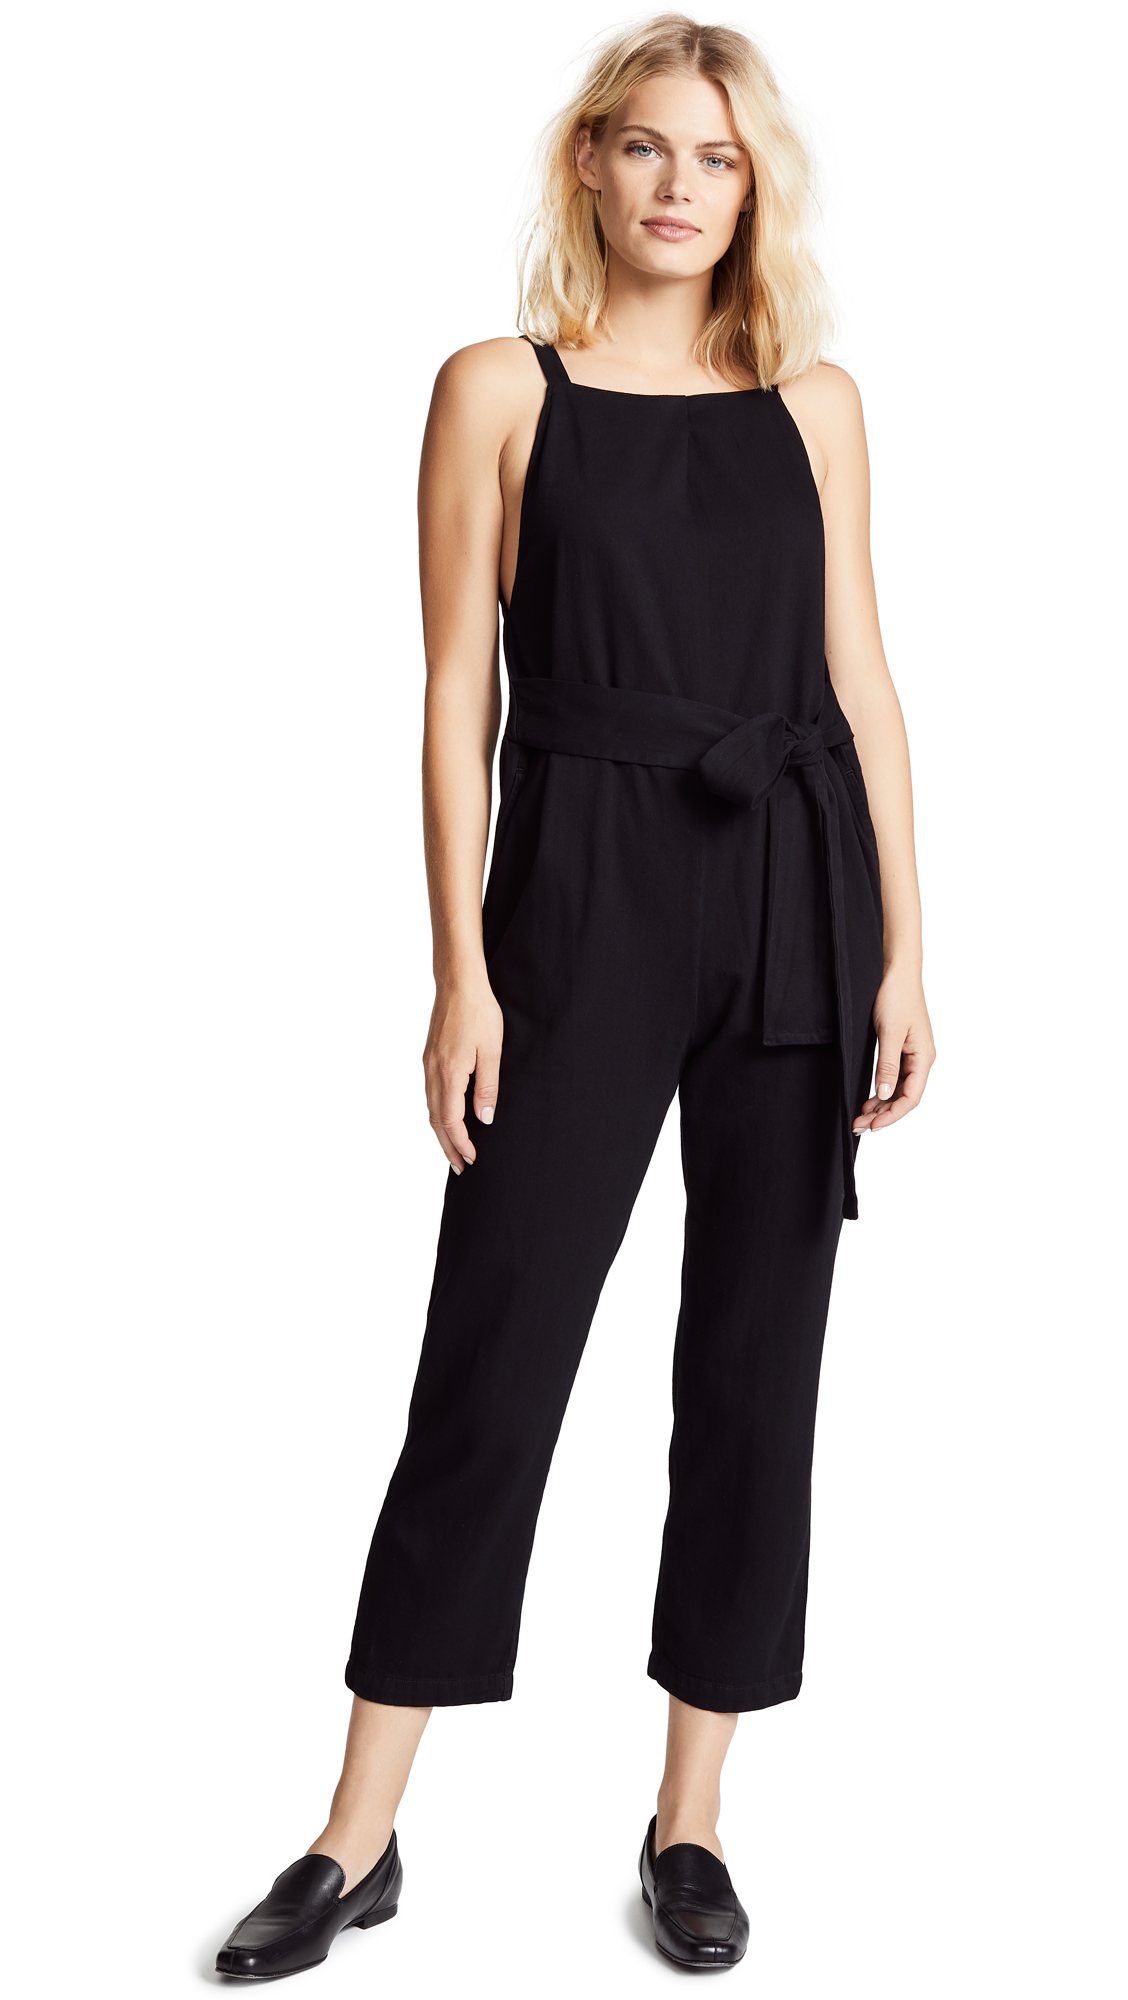 3×1 Antifit Jumpsuit